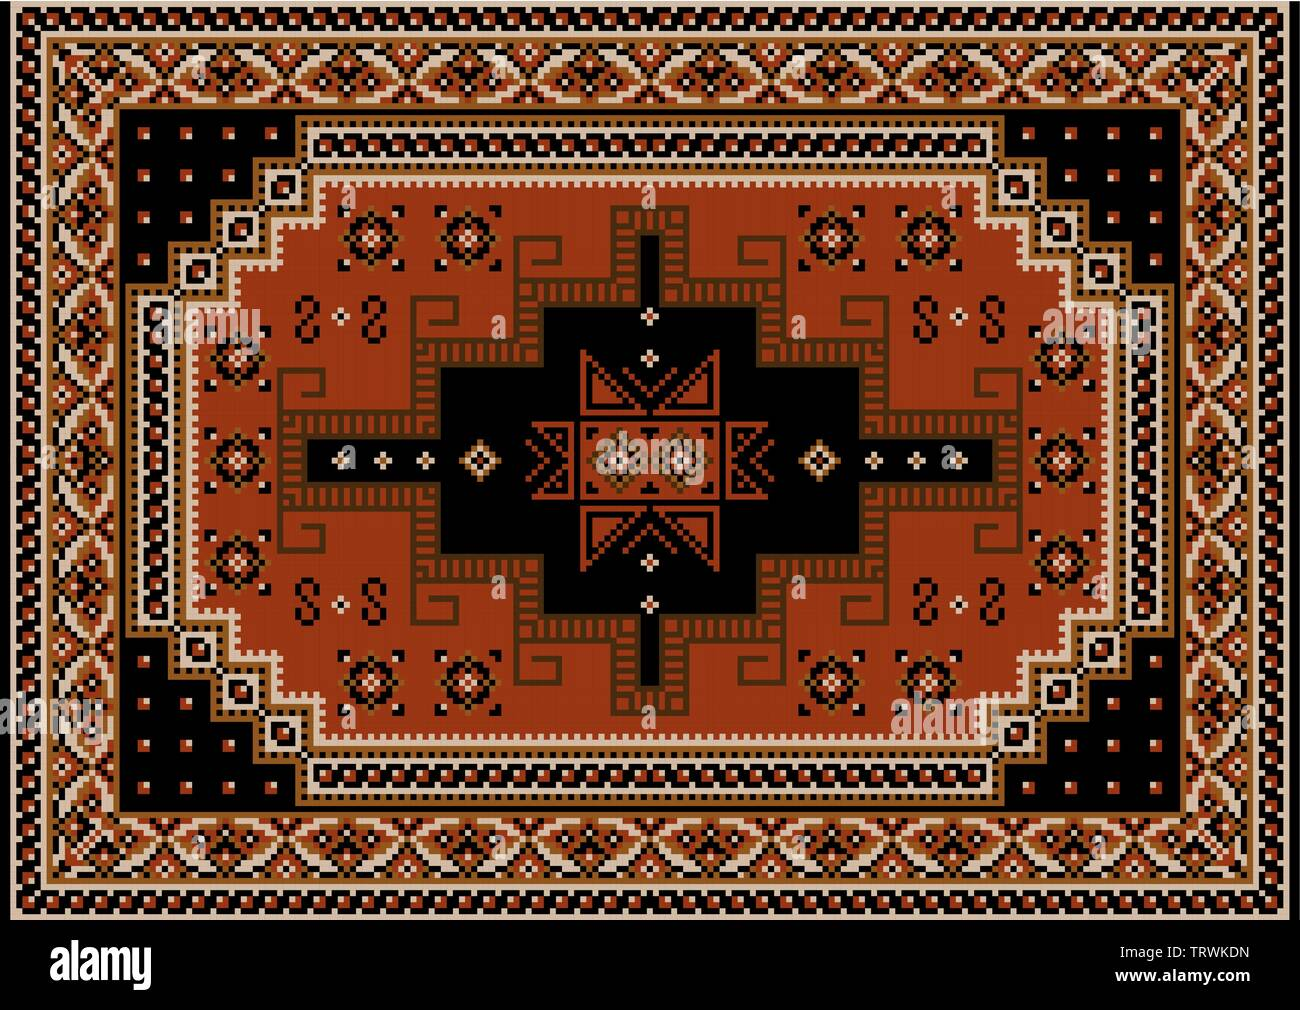 Luxury vintage oriental carpet with red-brown, black, beige and brown shades on black background - Stock Image